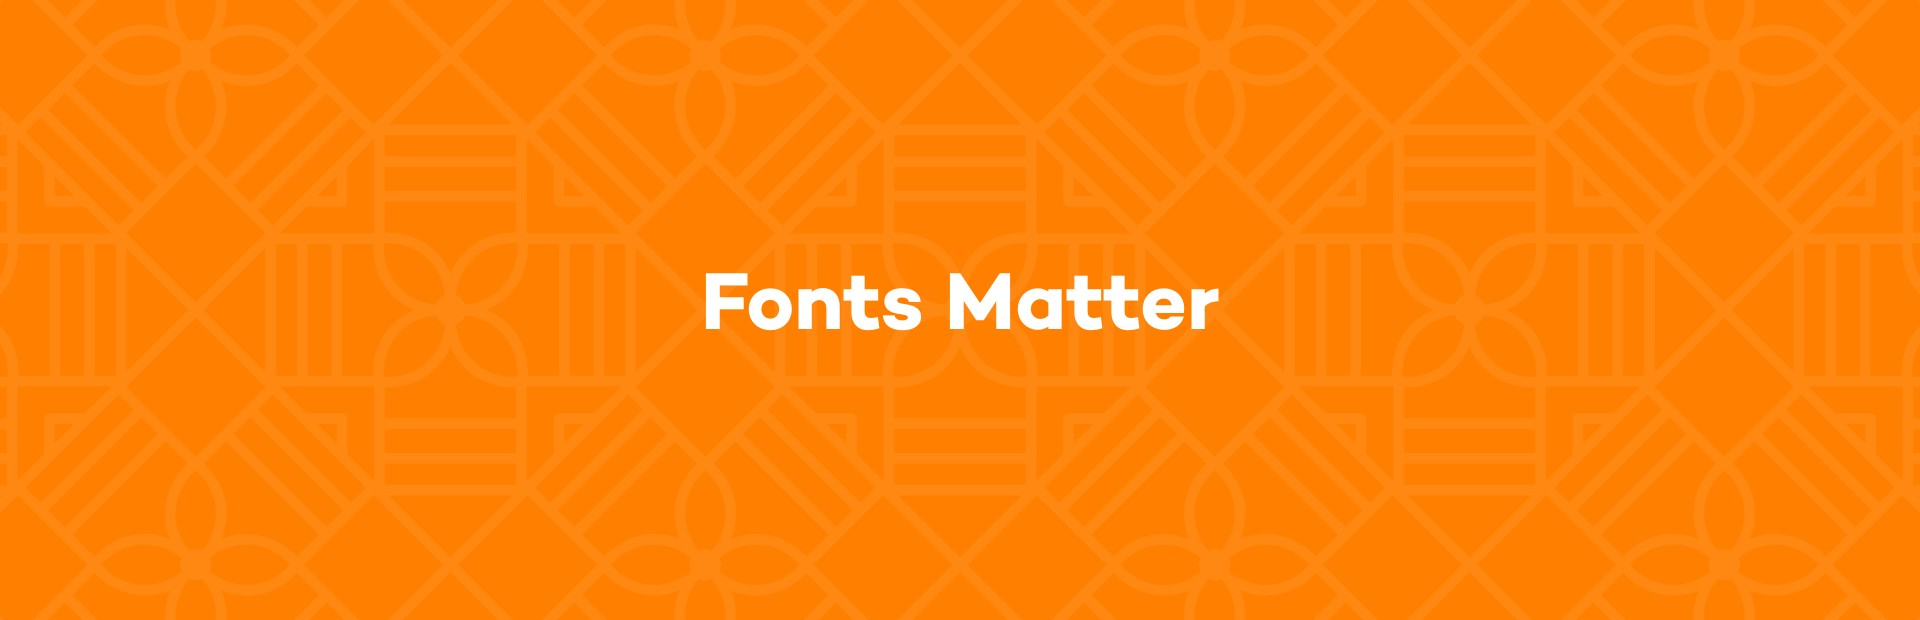 5 Google Fonts for your websites and mobile apps - NYC Design - Medium